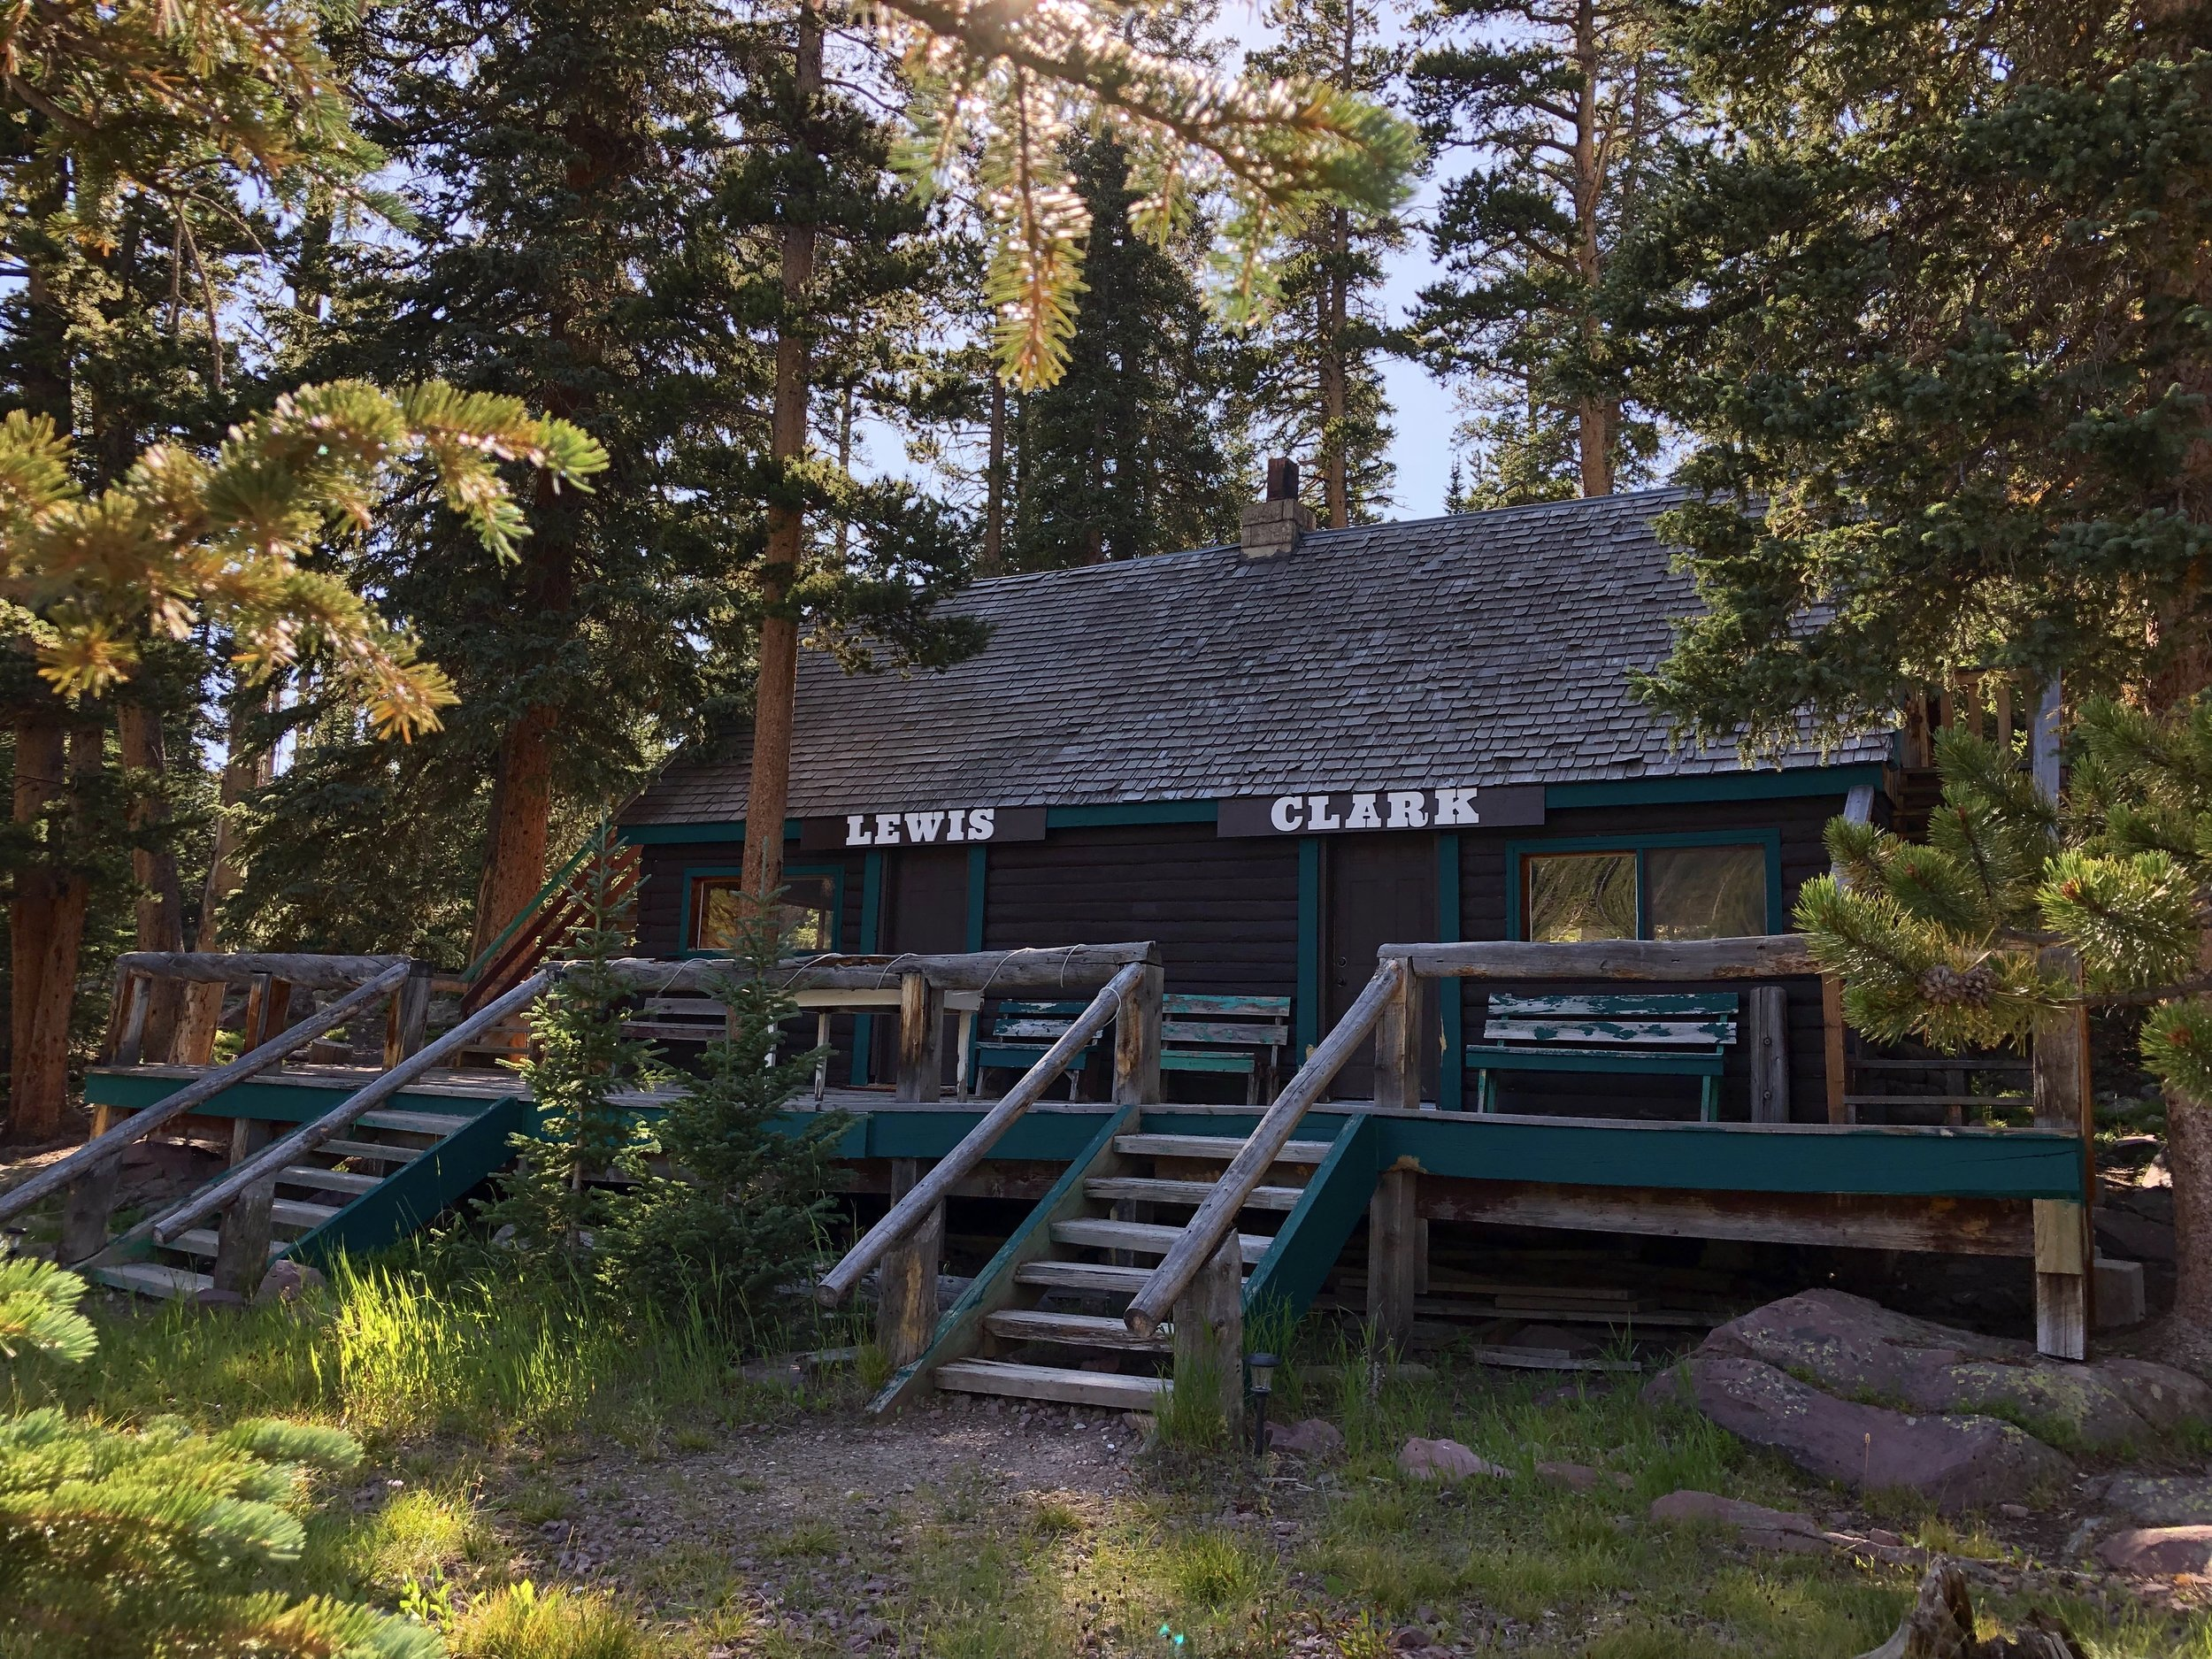 Clark - Sleeps 6 - 272 sq/ft Duplex Cabin With Private LoftTwo Queen Beds On Main LevelSingle Queen Bed In Loft (Private Entrance)PricingSunday - Thursday | $100/NightFriday & Saturday | $115/Night